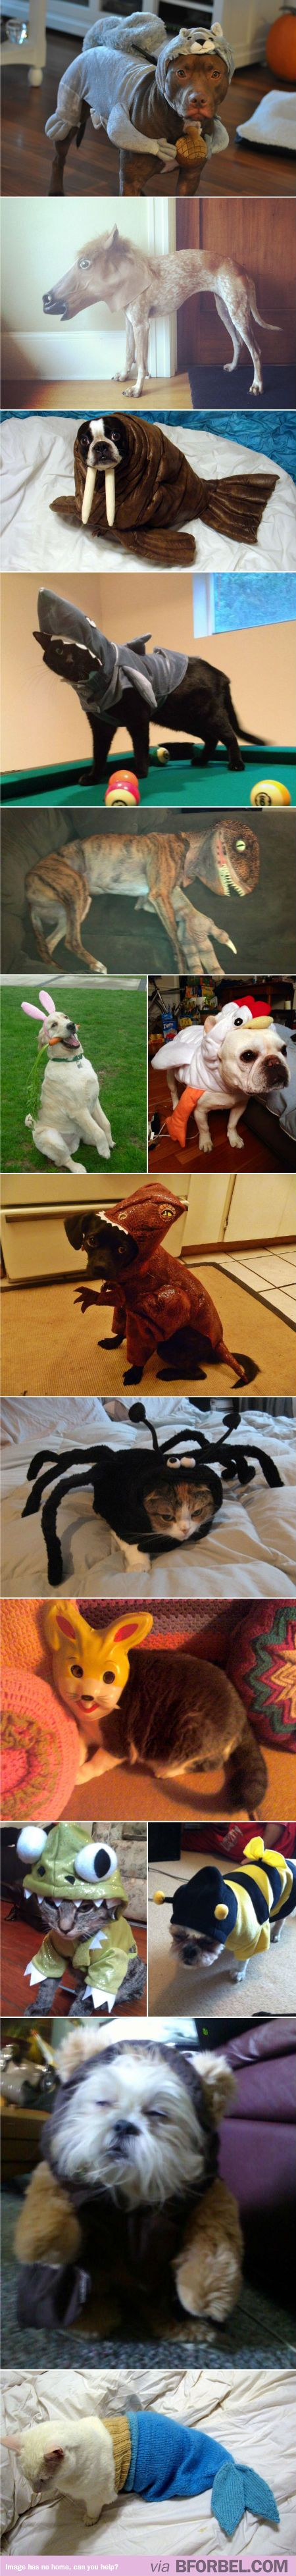 Animals dressed as other animals. Can't handle the cuteness.